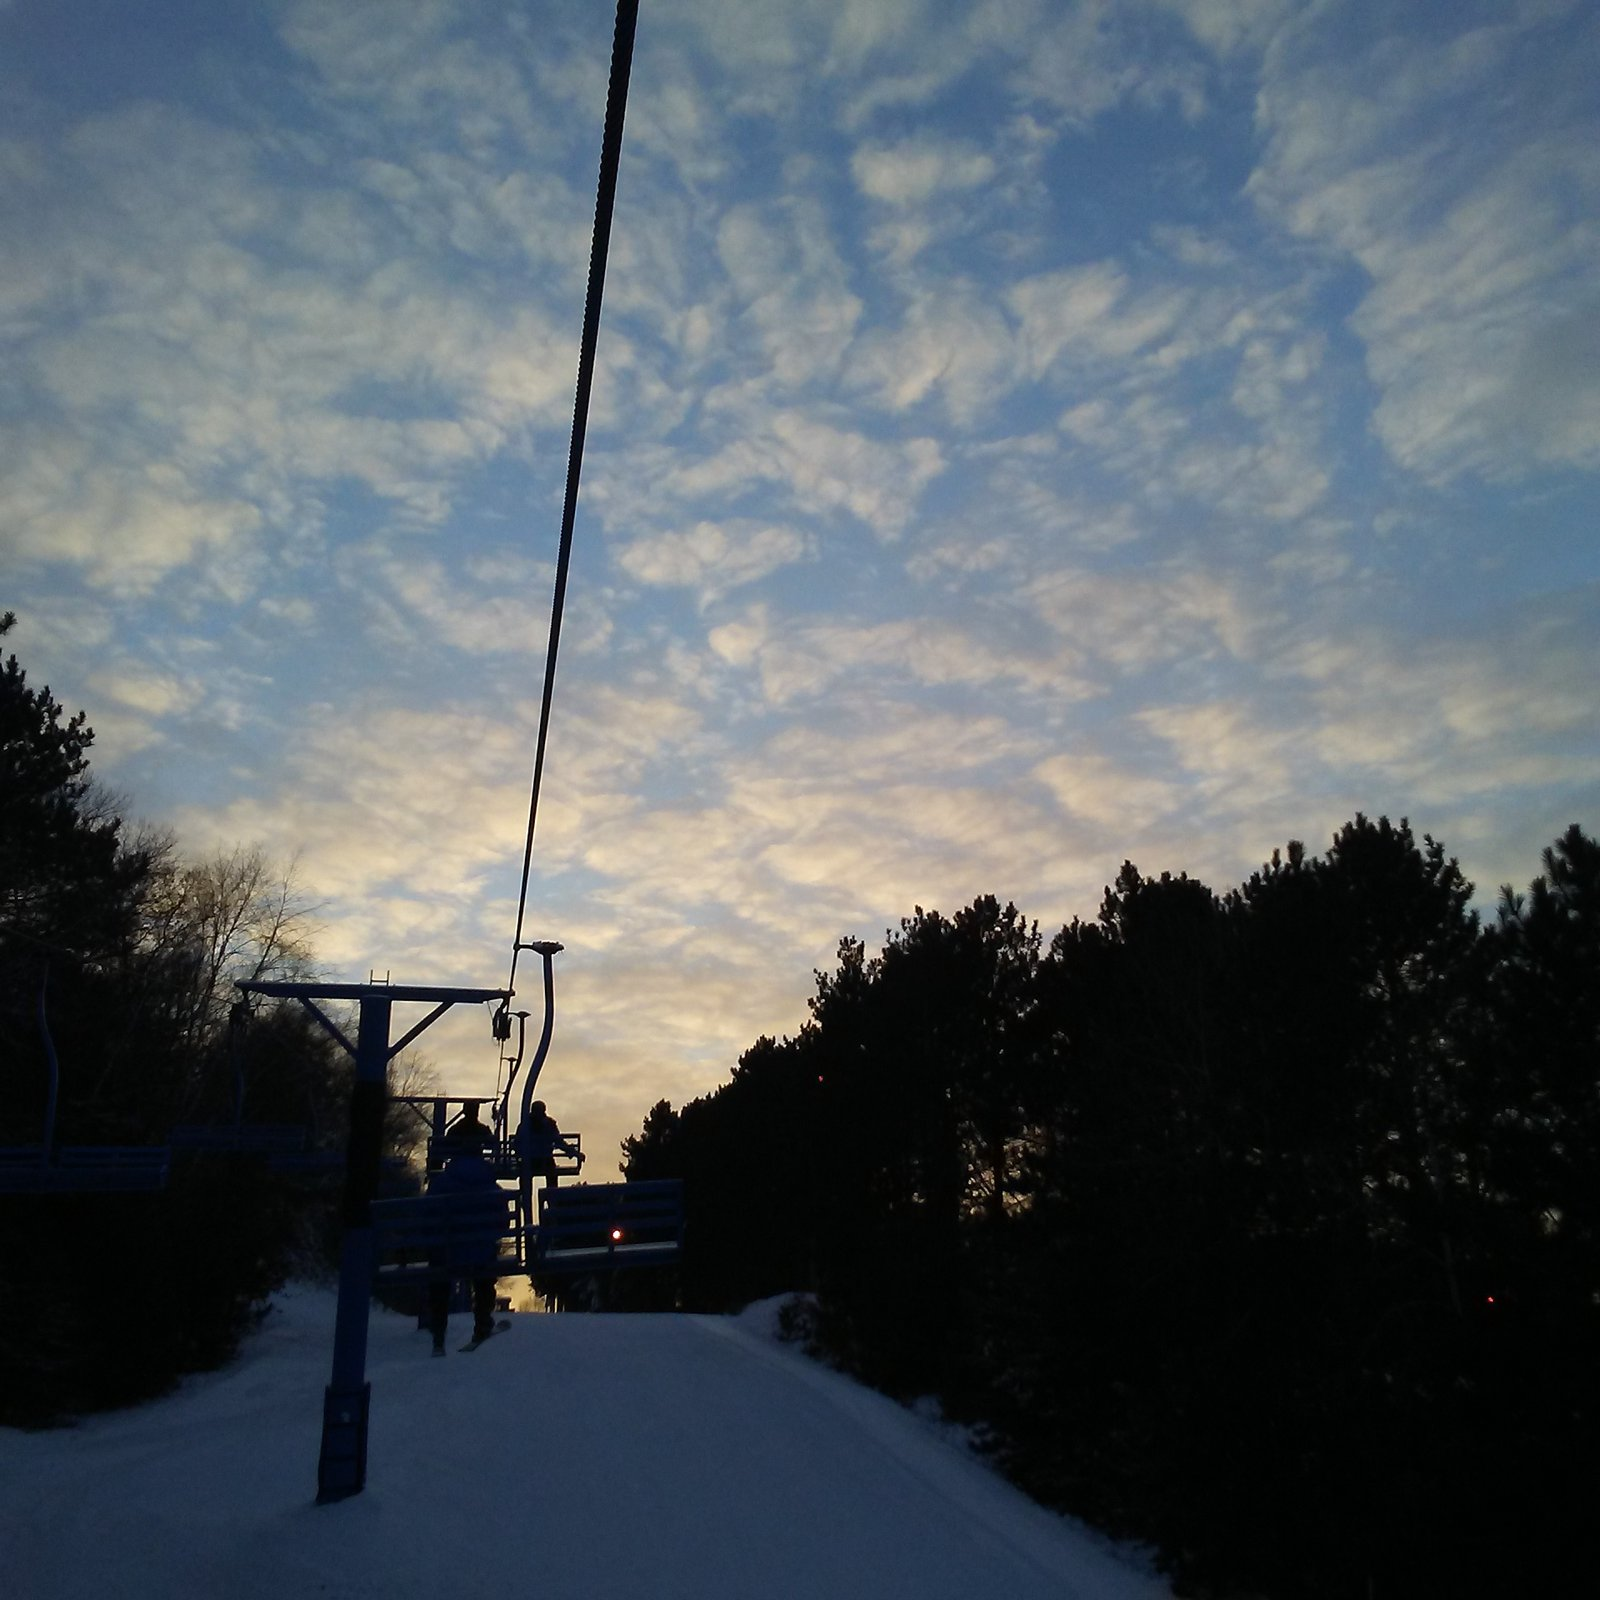 Chairlift sunset